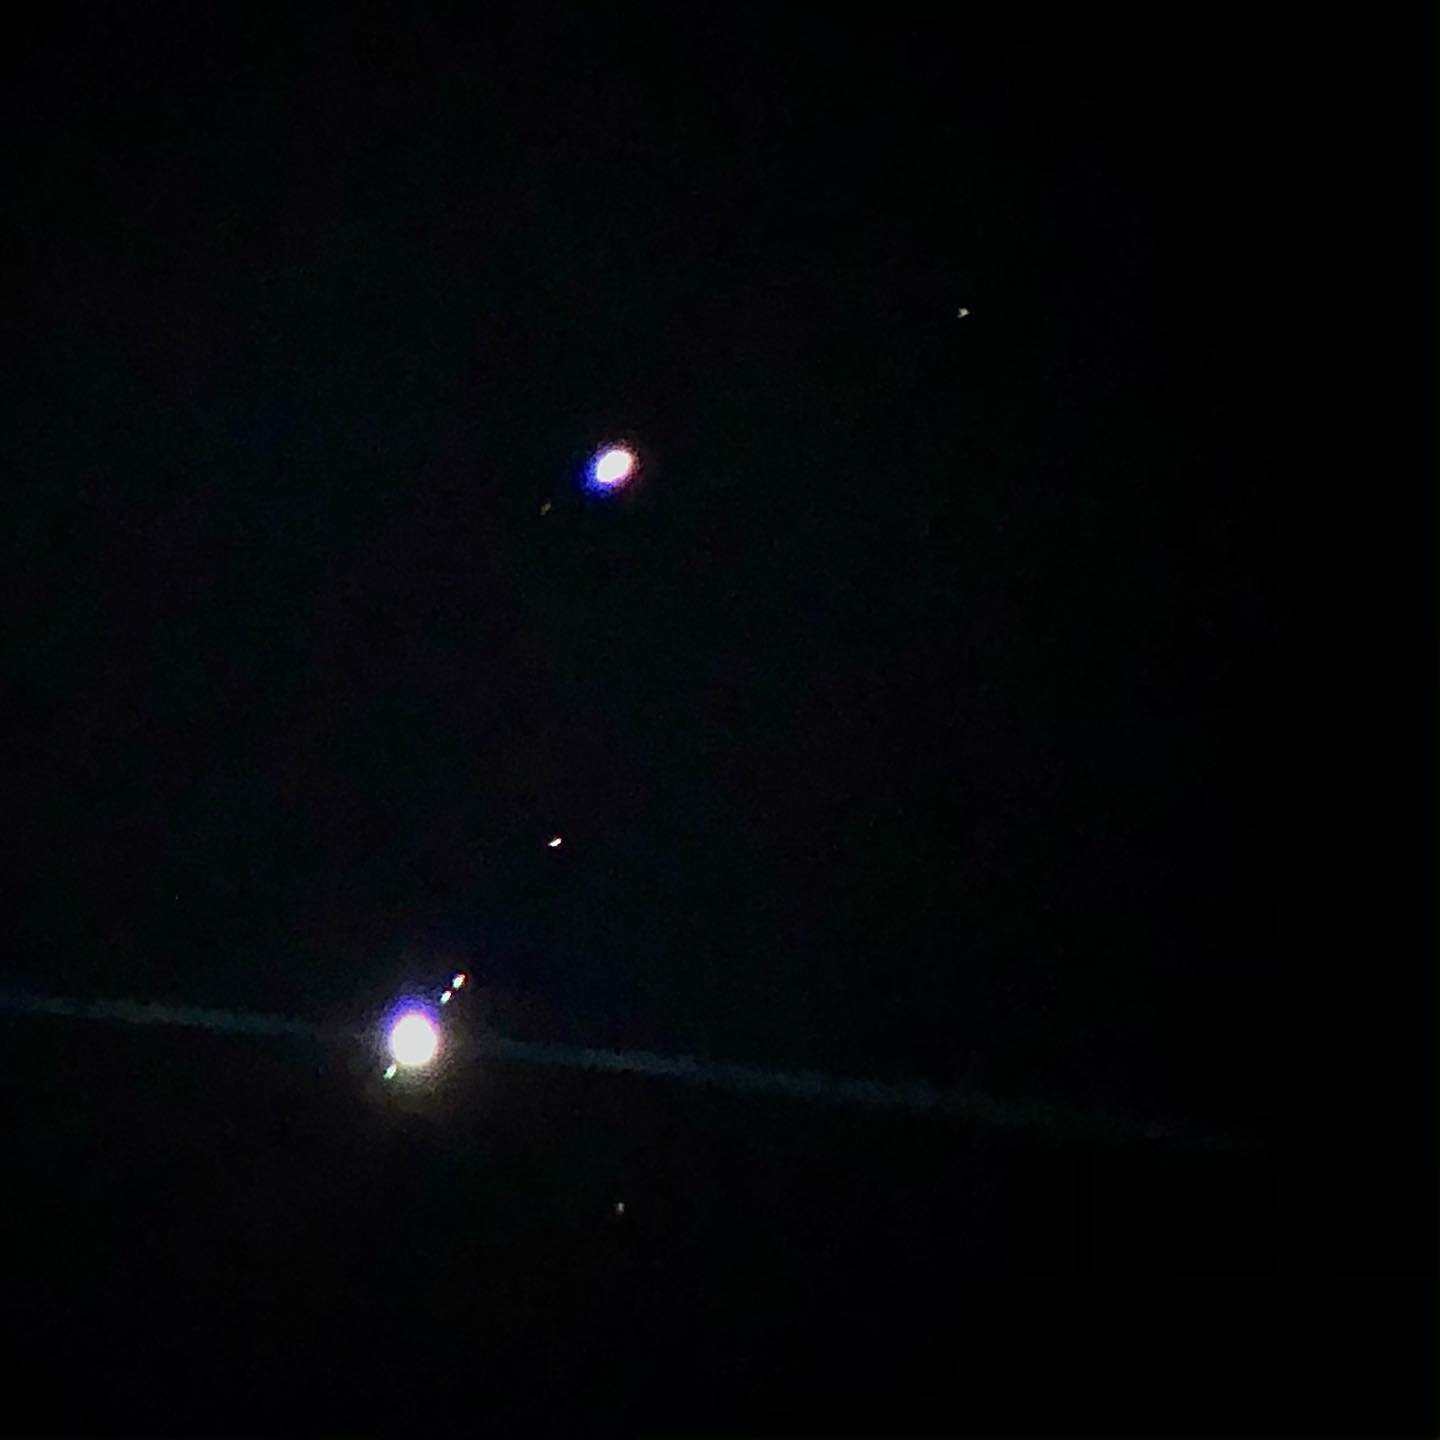 Leading up to the Great Conjunction! Jupiter and Saturn getting close